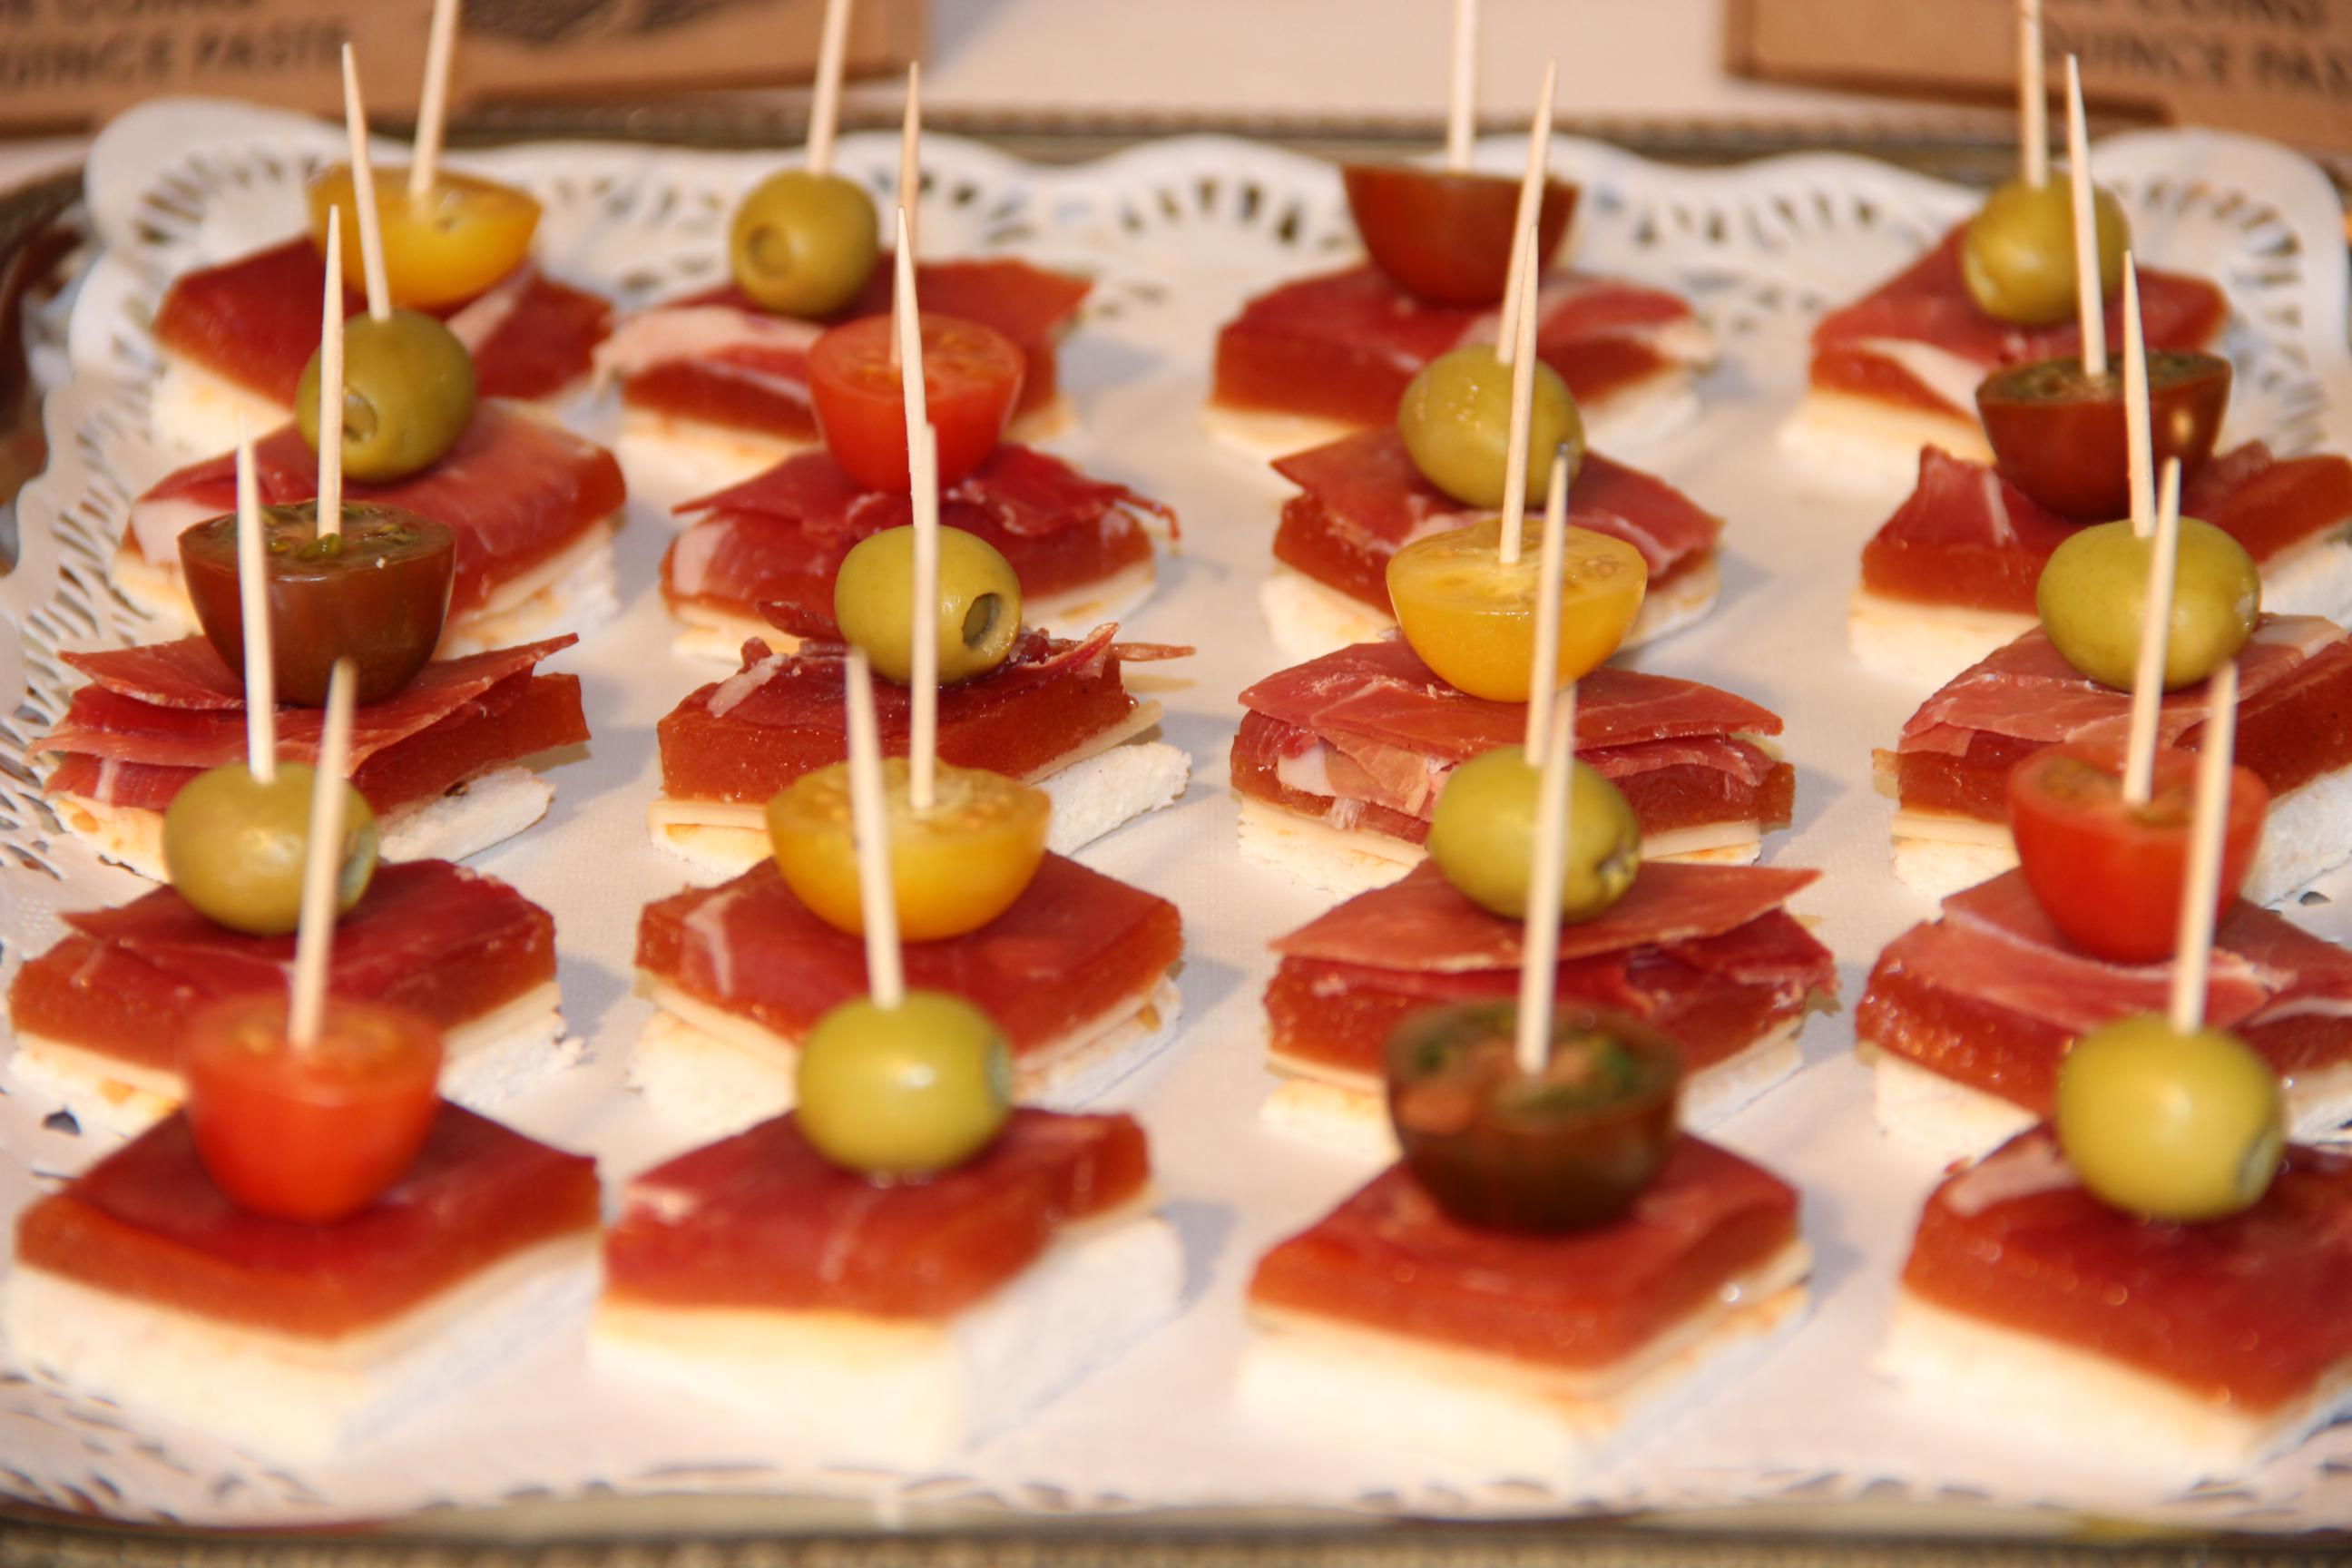 Canap de membrillo valliser con queso jam n y cositas for Canape de jamon y queso